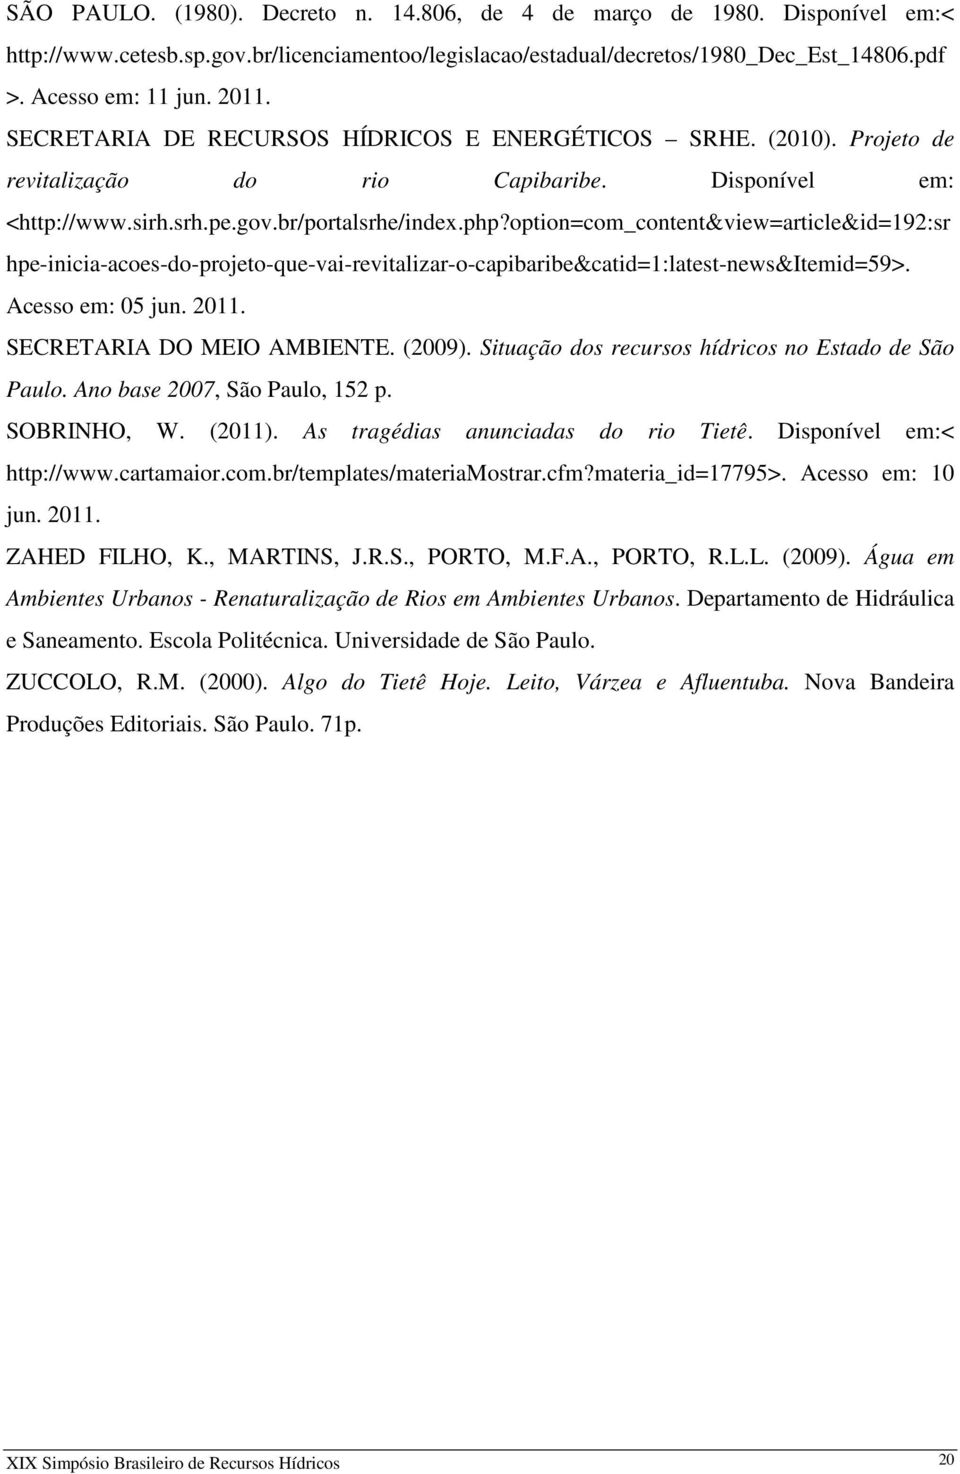 option=com_content&view=article&id=192:sr hpe-inicia-acoes-do-projeto-que-vai-revitalizar-o-capibaribe&catid=1:latest-news&itemid=59>. Acesso em: 05 jun. 2011. SECRETARIA DO MEIO AMBIENTE. (2009).